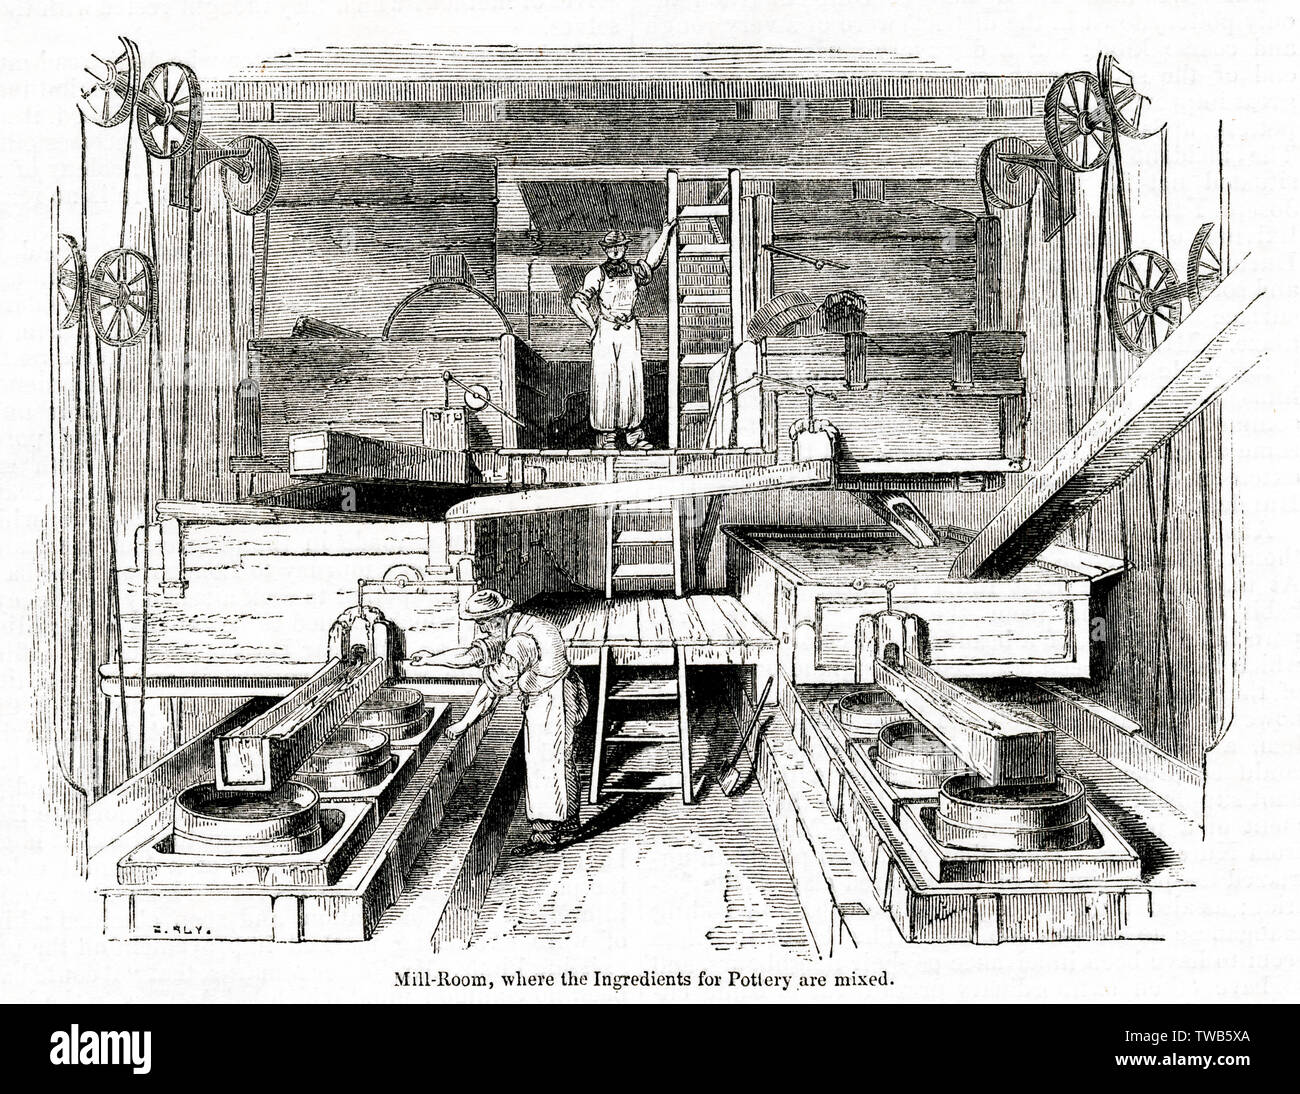 Mill Room where the ingredients are mixed, Staffordshire Potteries.     Date: 1843 - Stock Image